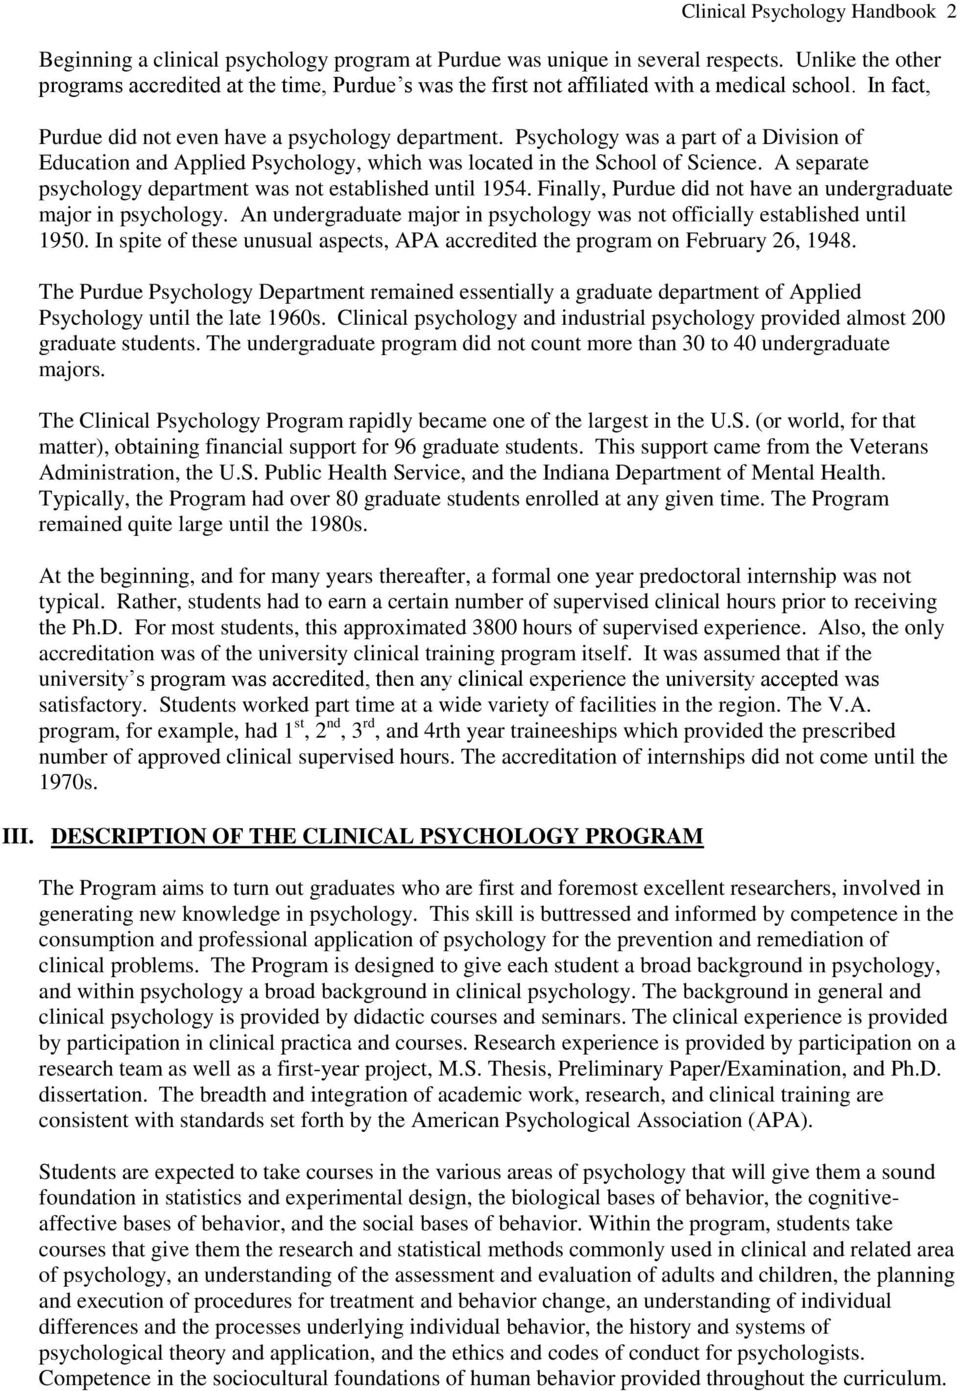 Psychology was a part of a Division of Education and Applied Psychology, which was located in the School of Science. A separate psychology department was not established until 1954.